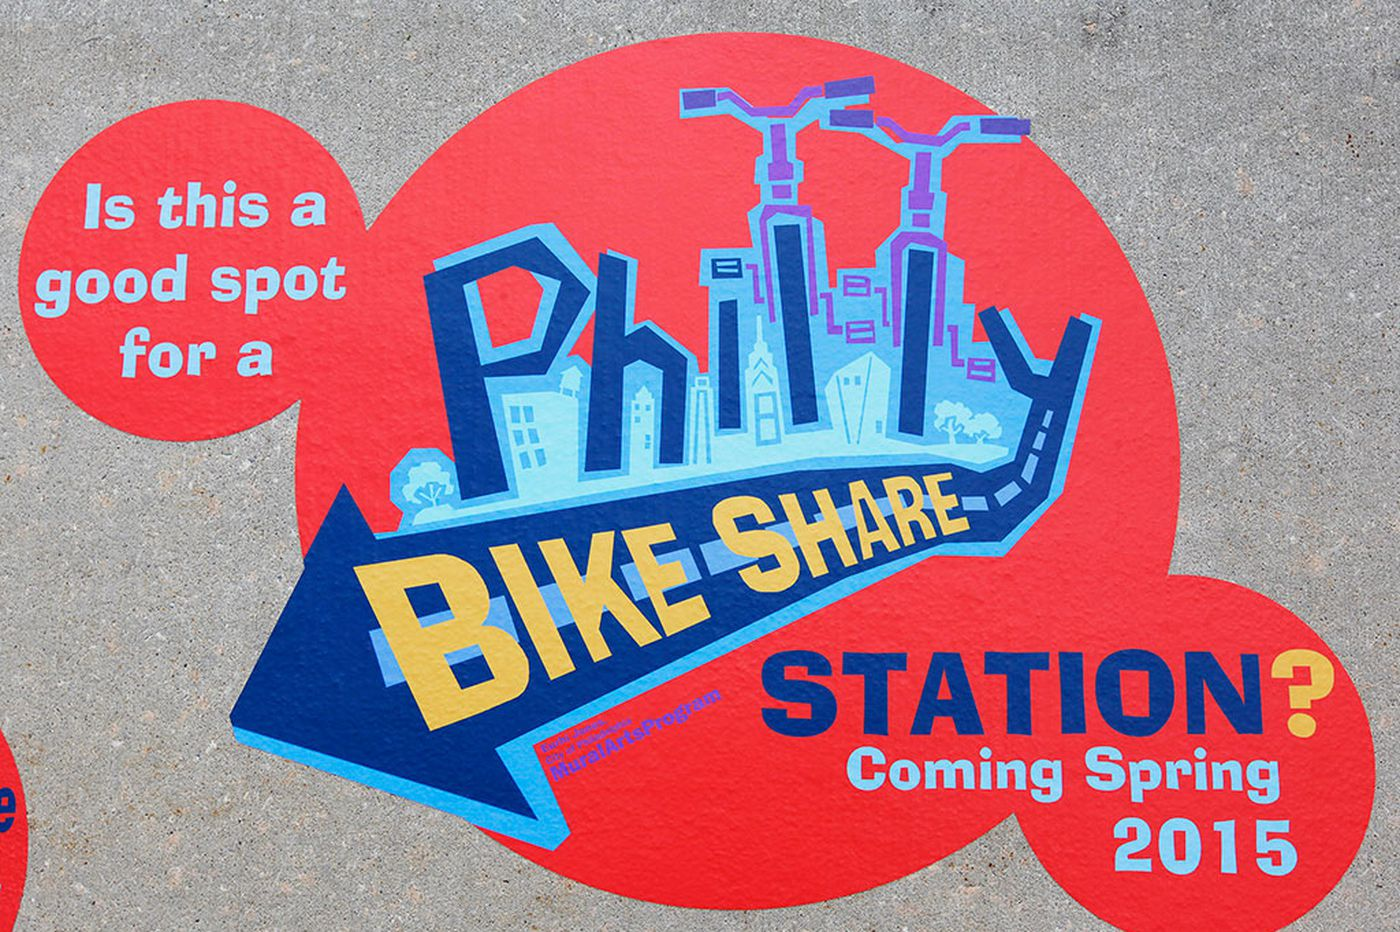 City seeks input in placing bike-share stations